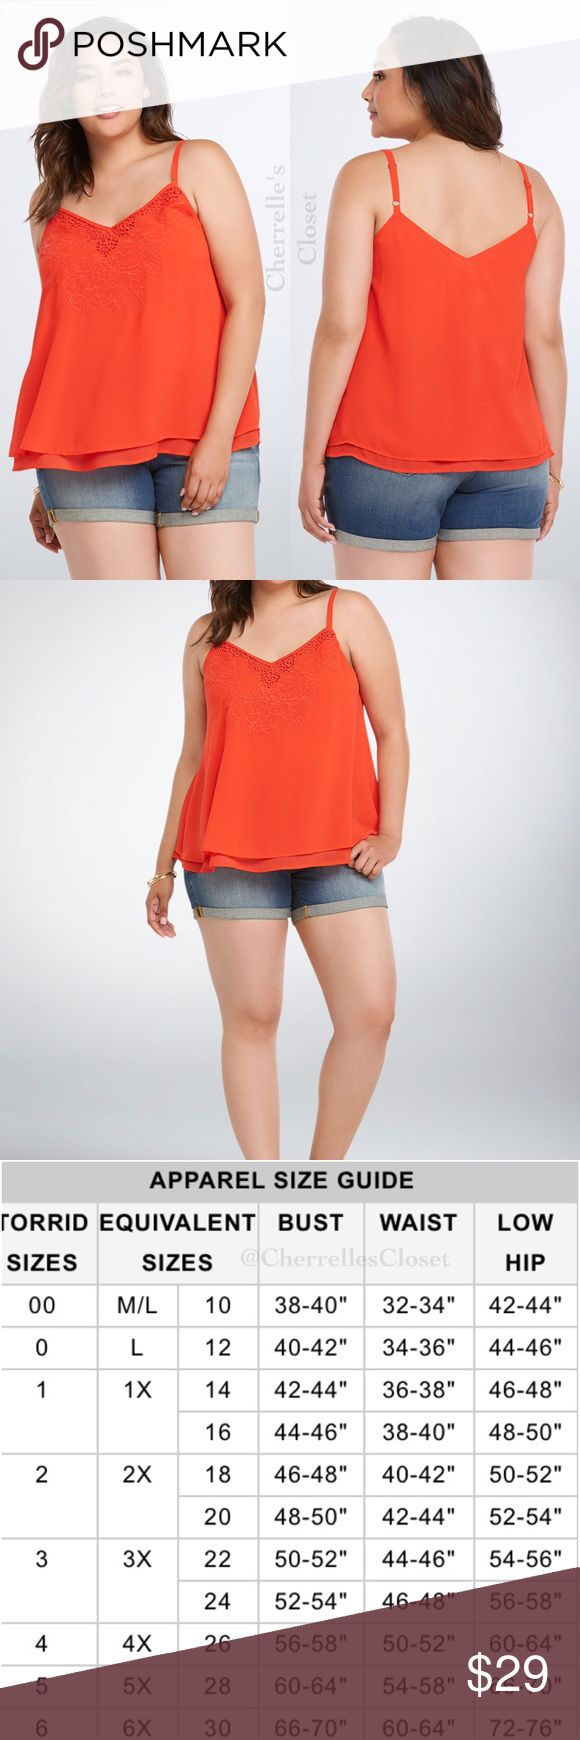 Torrid Embroidered Chiffon Cami Top Plus Size Brand New With Tags Plus Size 5 28 5X   Bae won't be able to keep their hands off you in this cami top! It's pretty irresistible with siren red chiffon layered together for a swingy effect. The embroidered neckline is sexy without trying too hard and just low enough that it'll leave them wanting more. Polyester torrid Tops